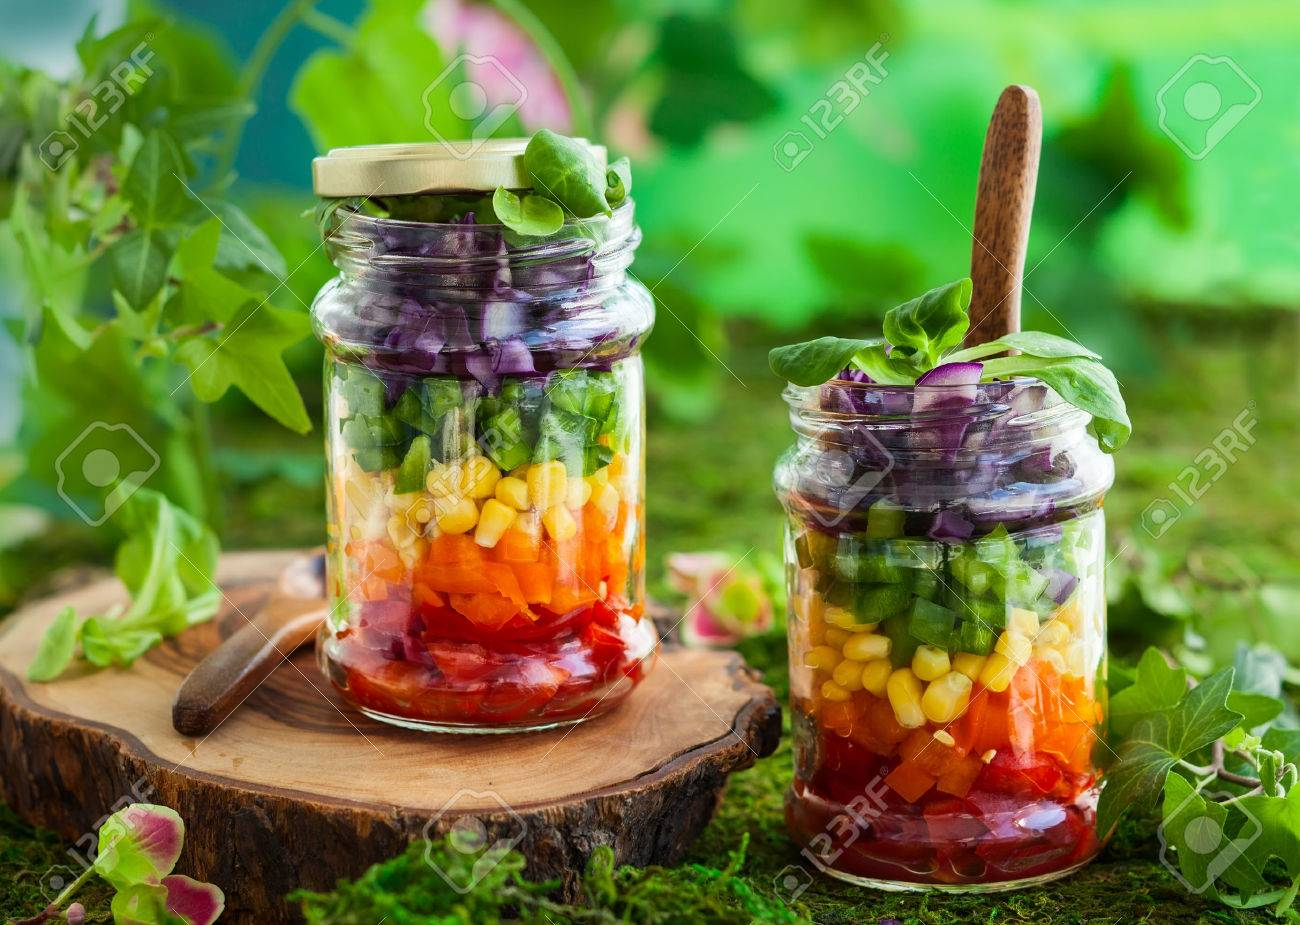 Vegetarian Rainbow Salad In A Glass Jar For Summer Picnic Stock